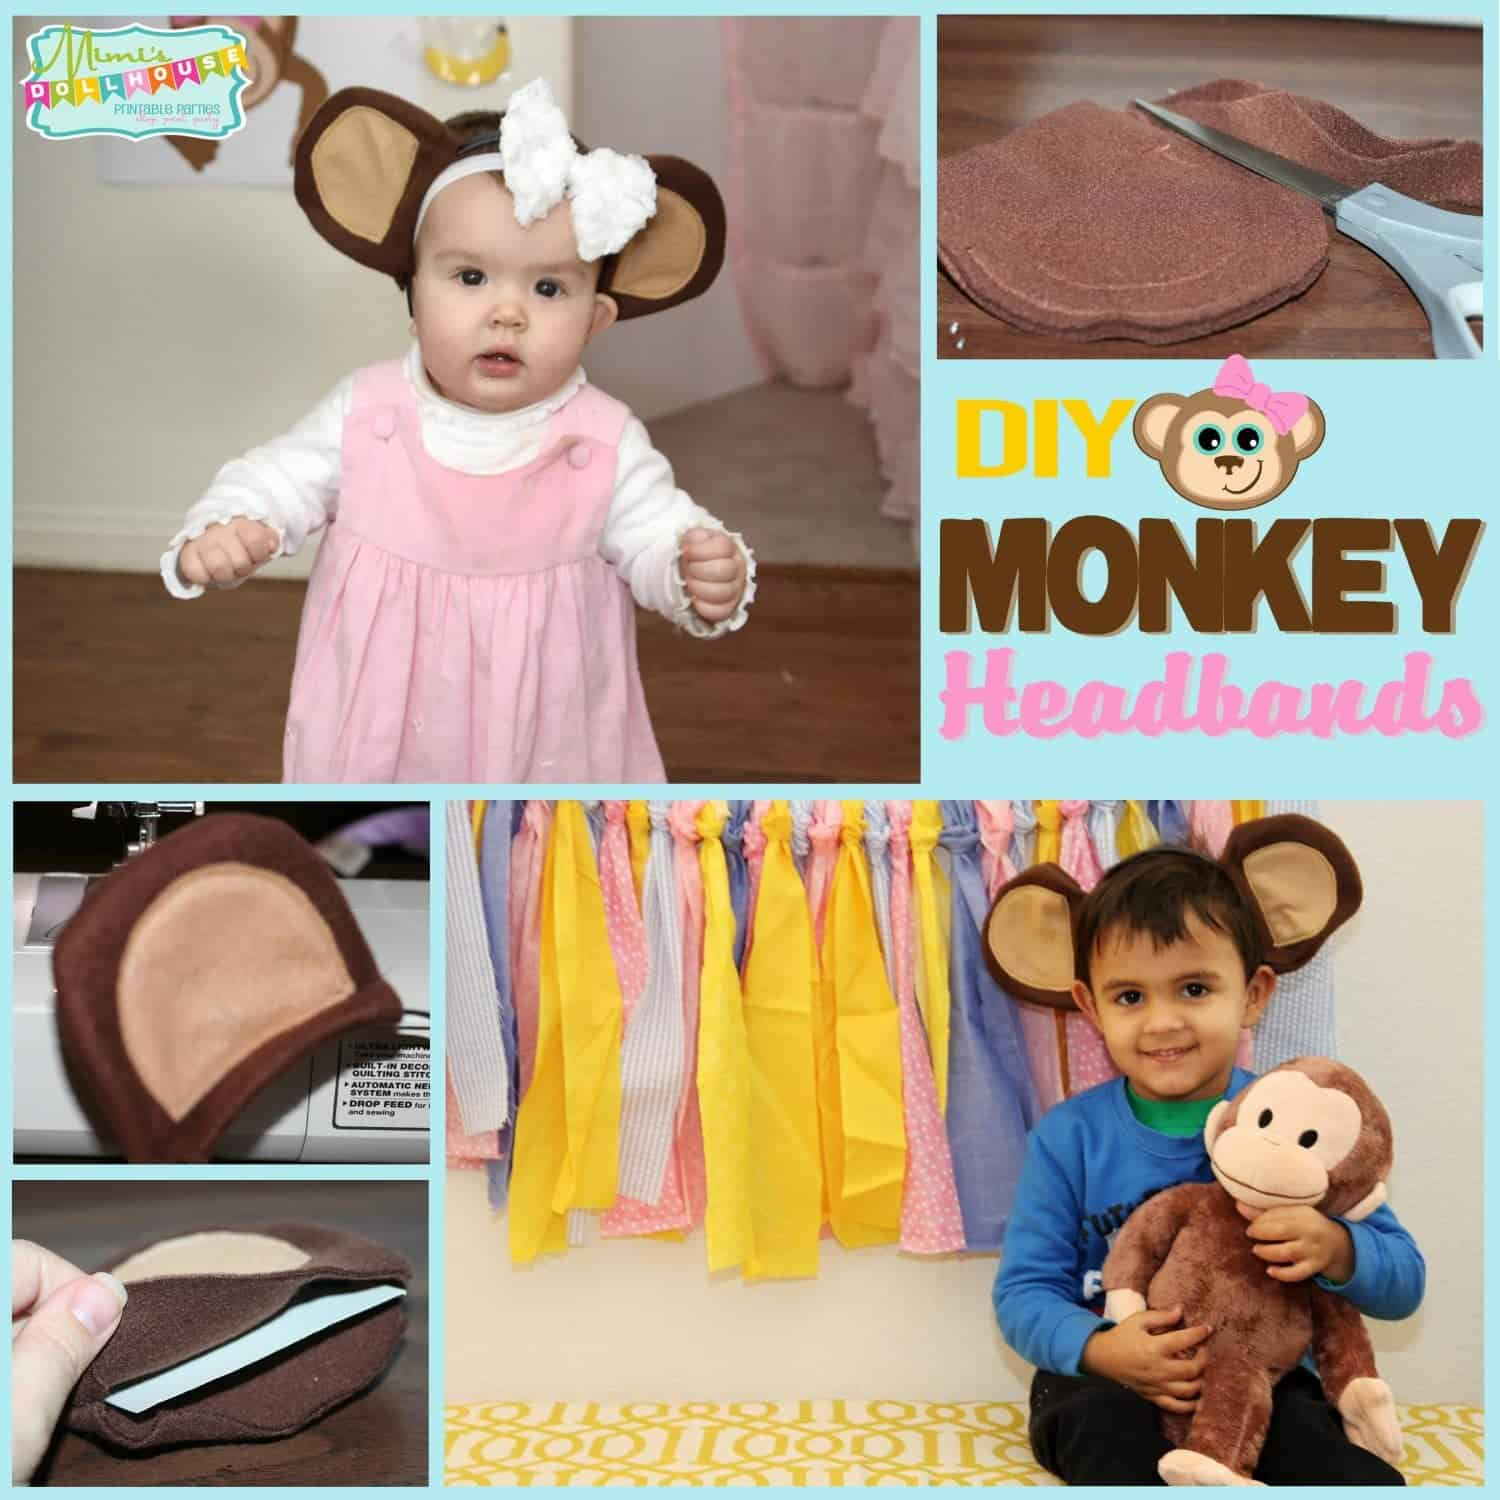 Monkey Party: DIY Monkey Headband Tutorial